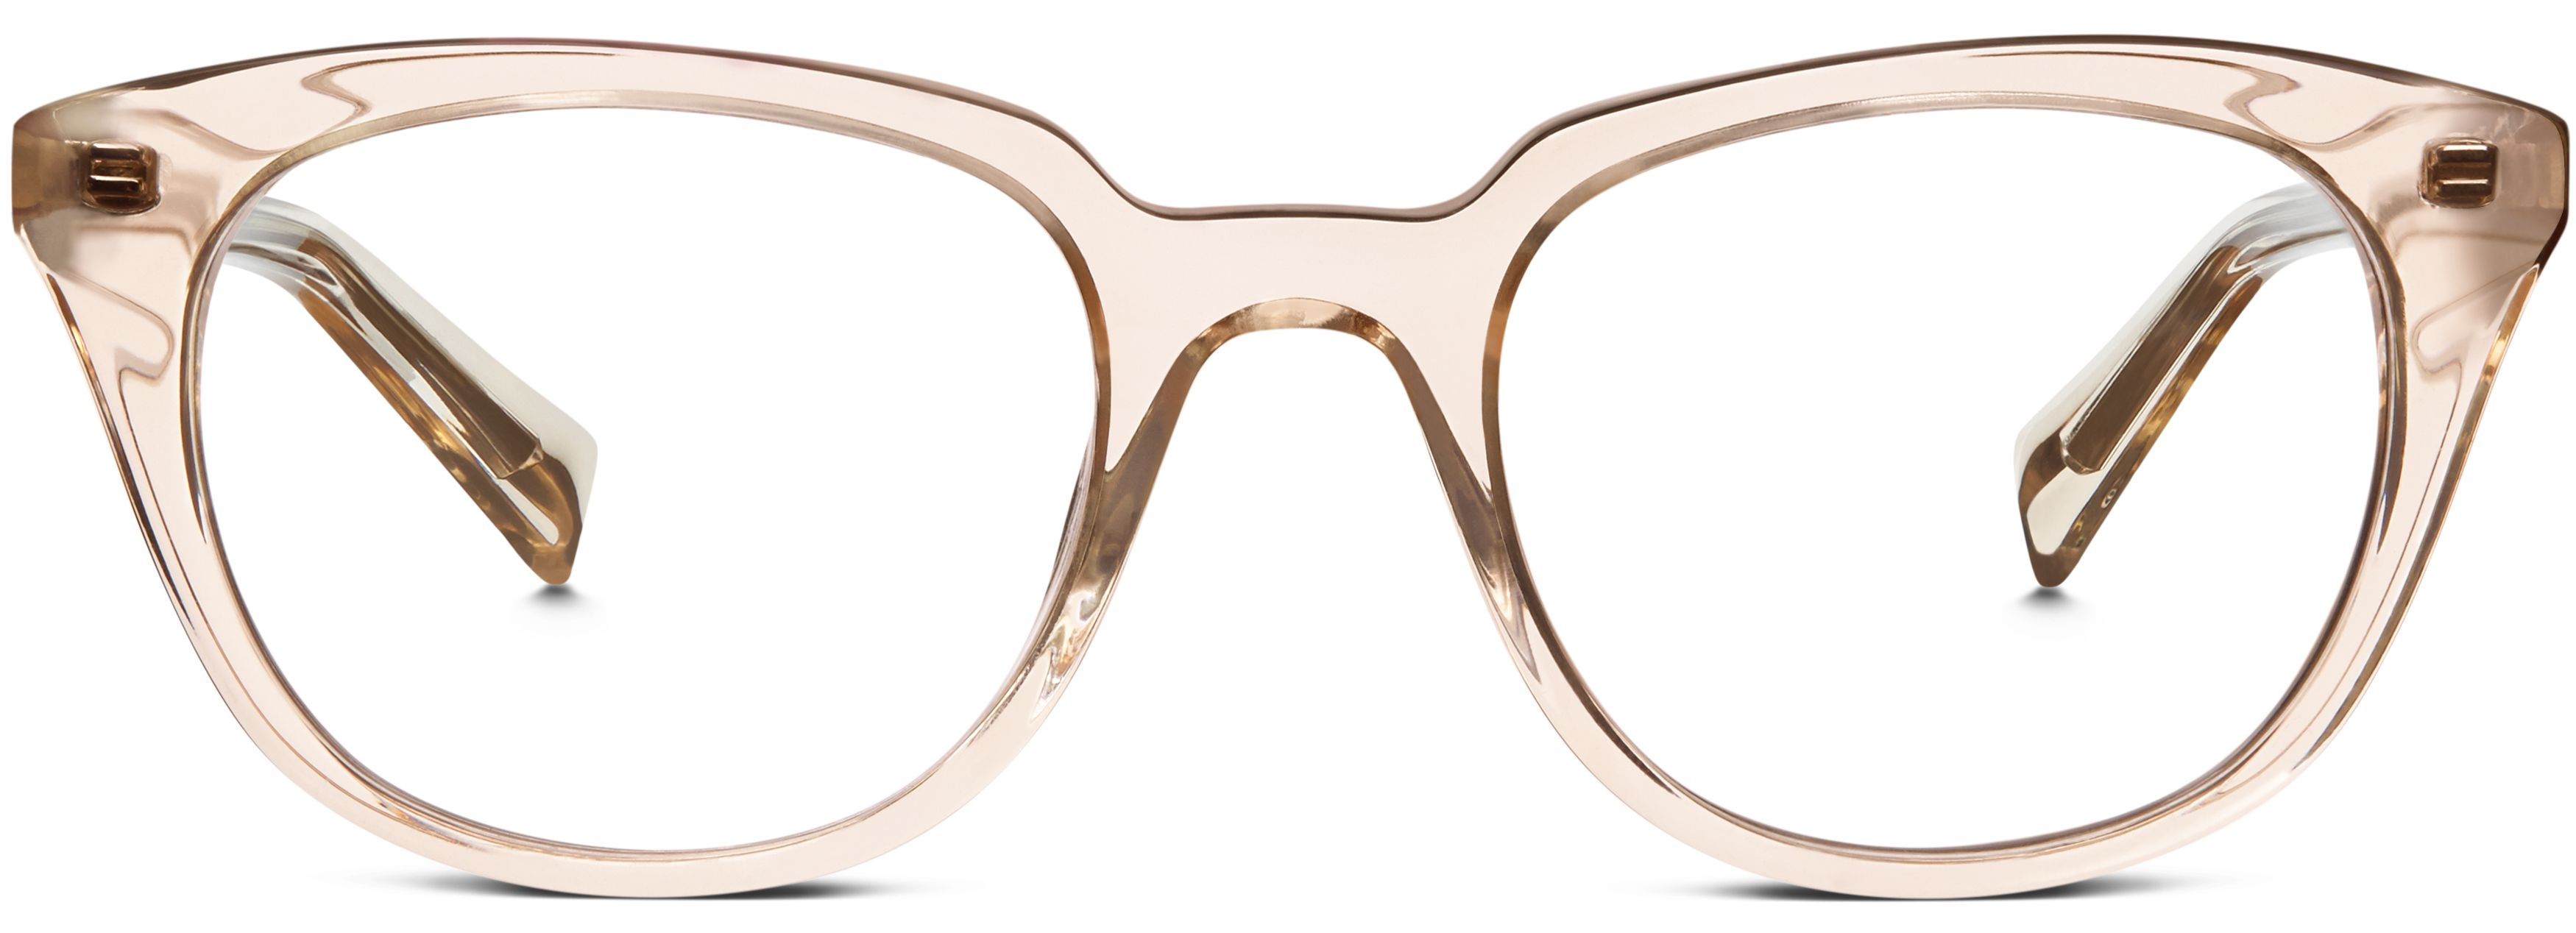 b3216b2da5 Chelsea Eyeglasses in Grapefruit Soda for Women